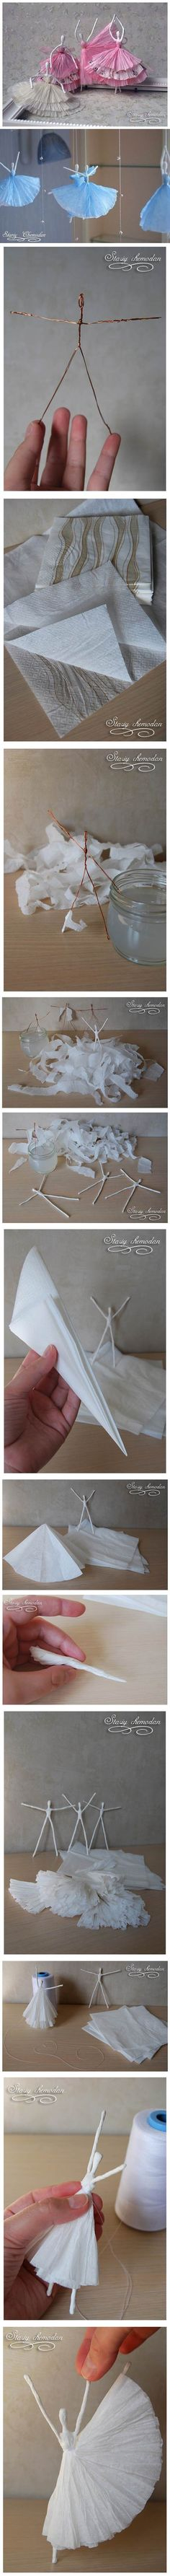 DIY Napkin Paper Ballerina | iCreativeIdeas.com Like Us on Facebook ==> https://www.facebook.com/icreativeideas